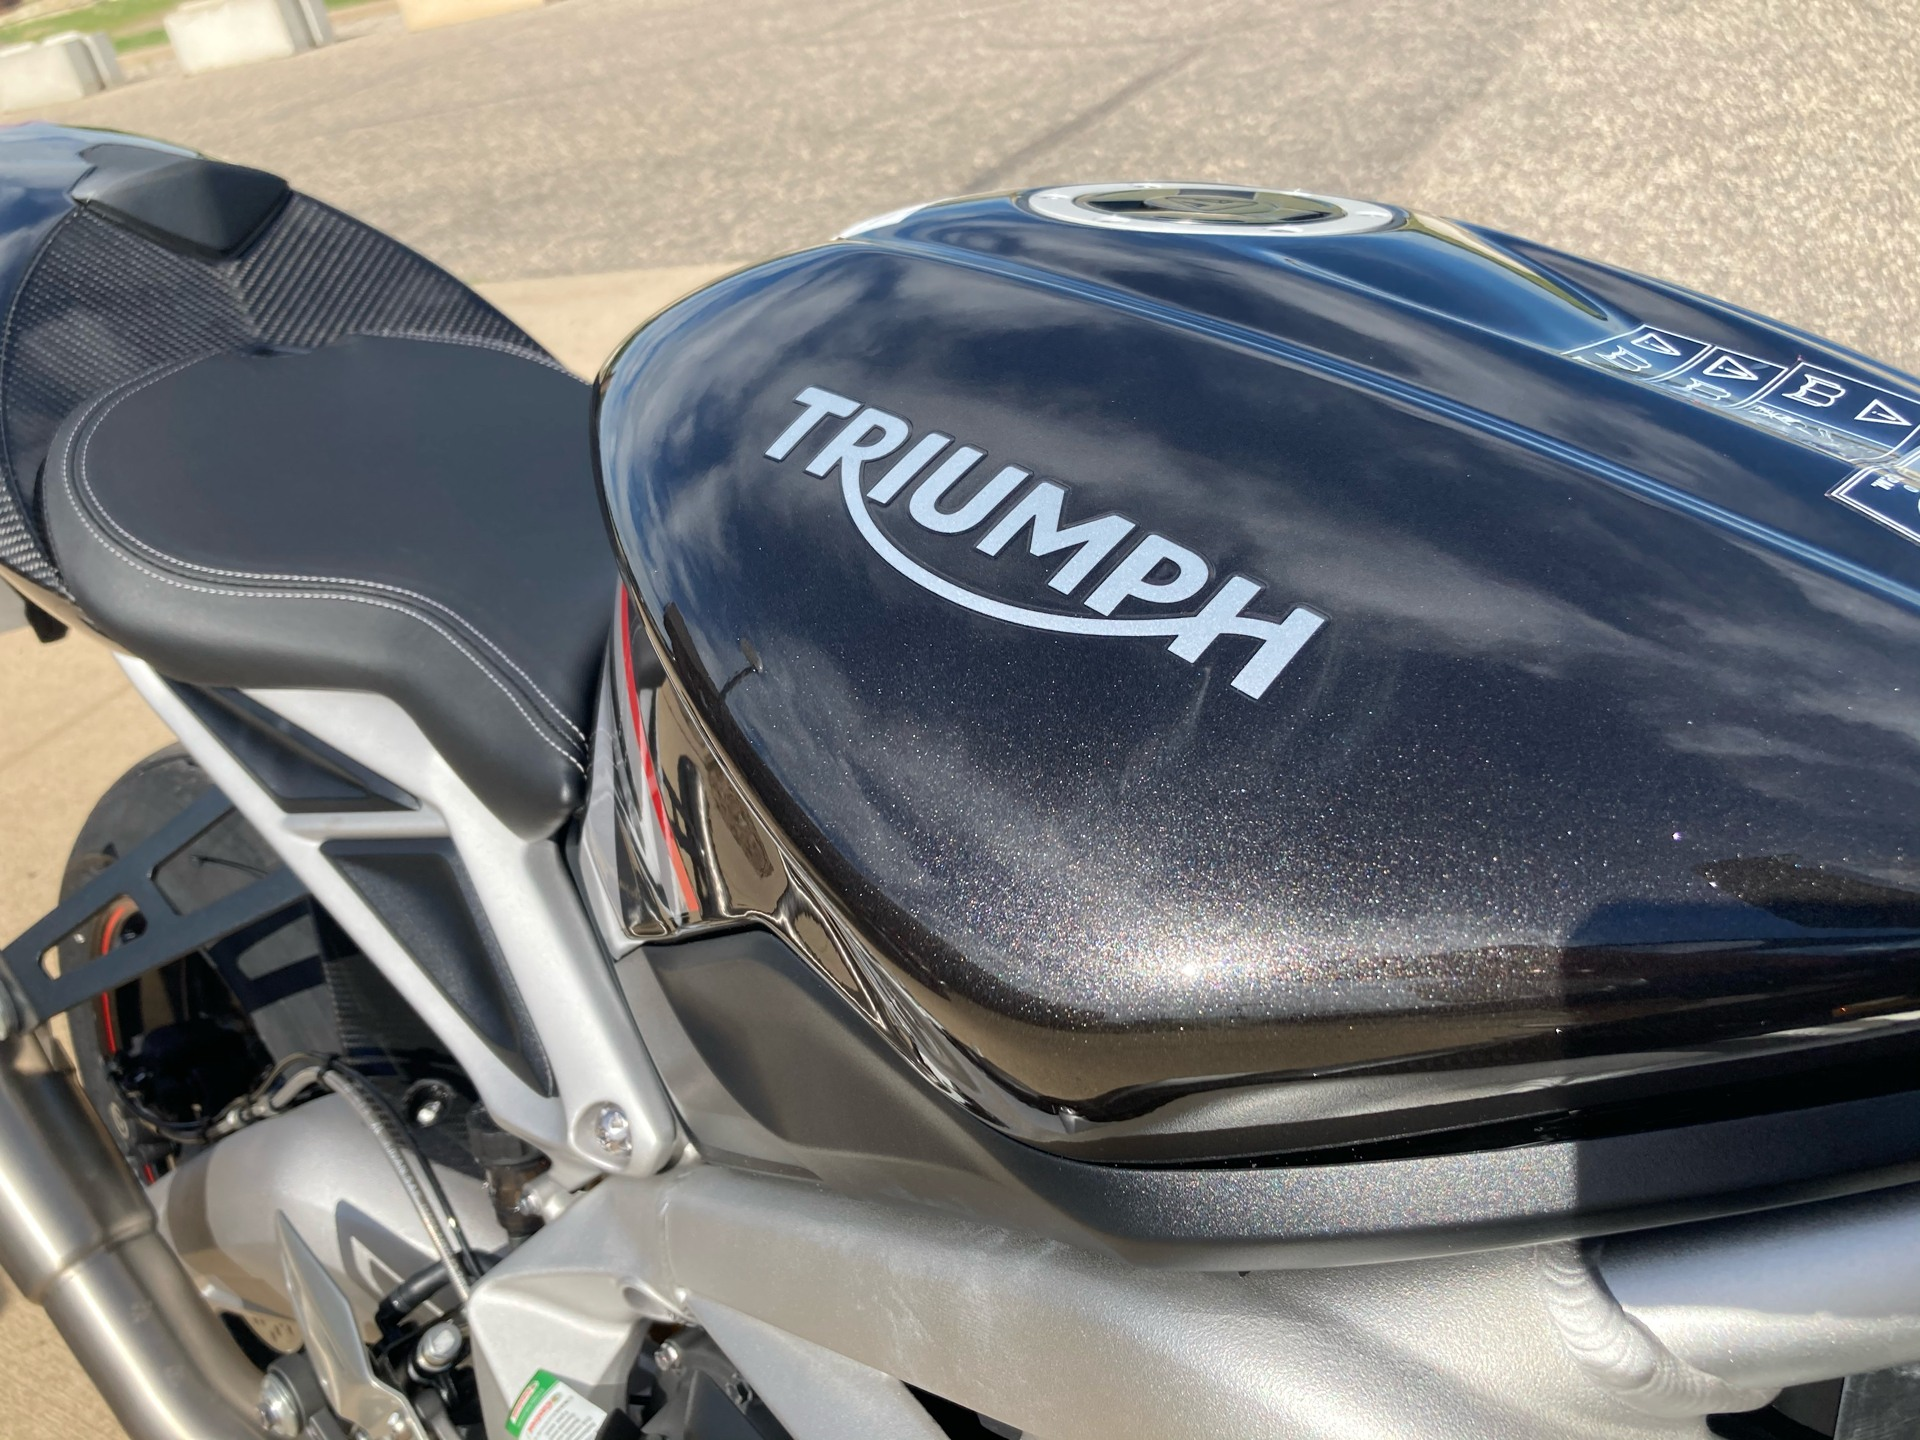 2020 Triumph Daytona Moto 2 Limited Edition in Belle Plaine, Minnesota - Photo 9